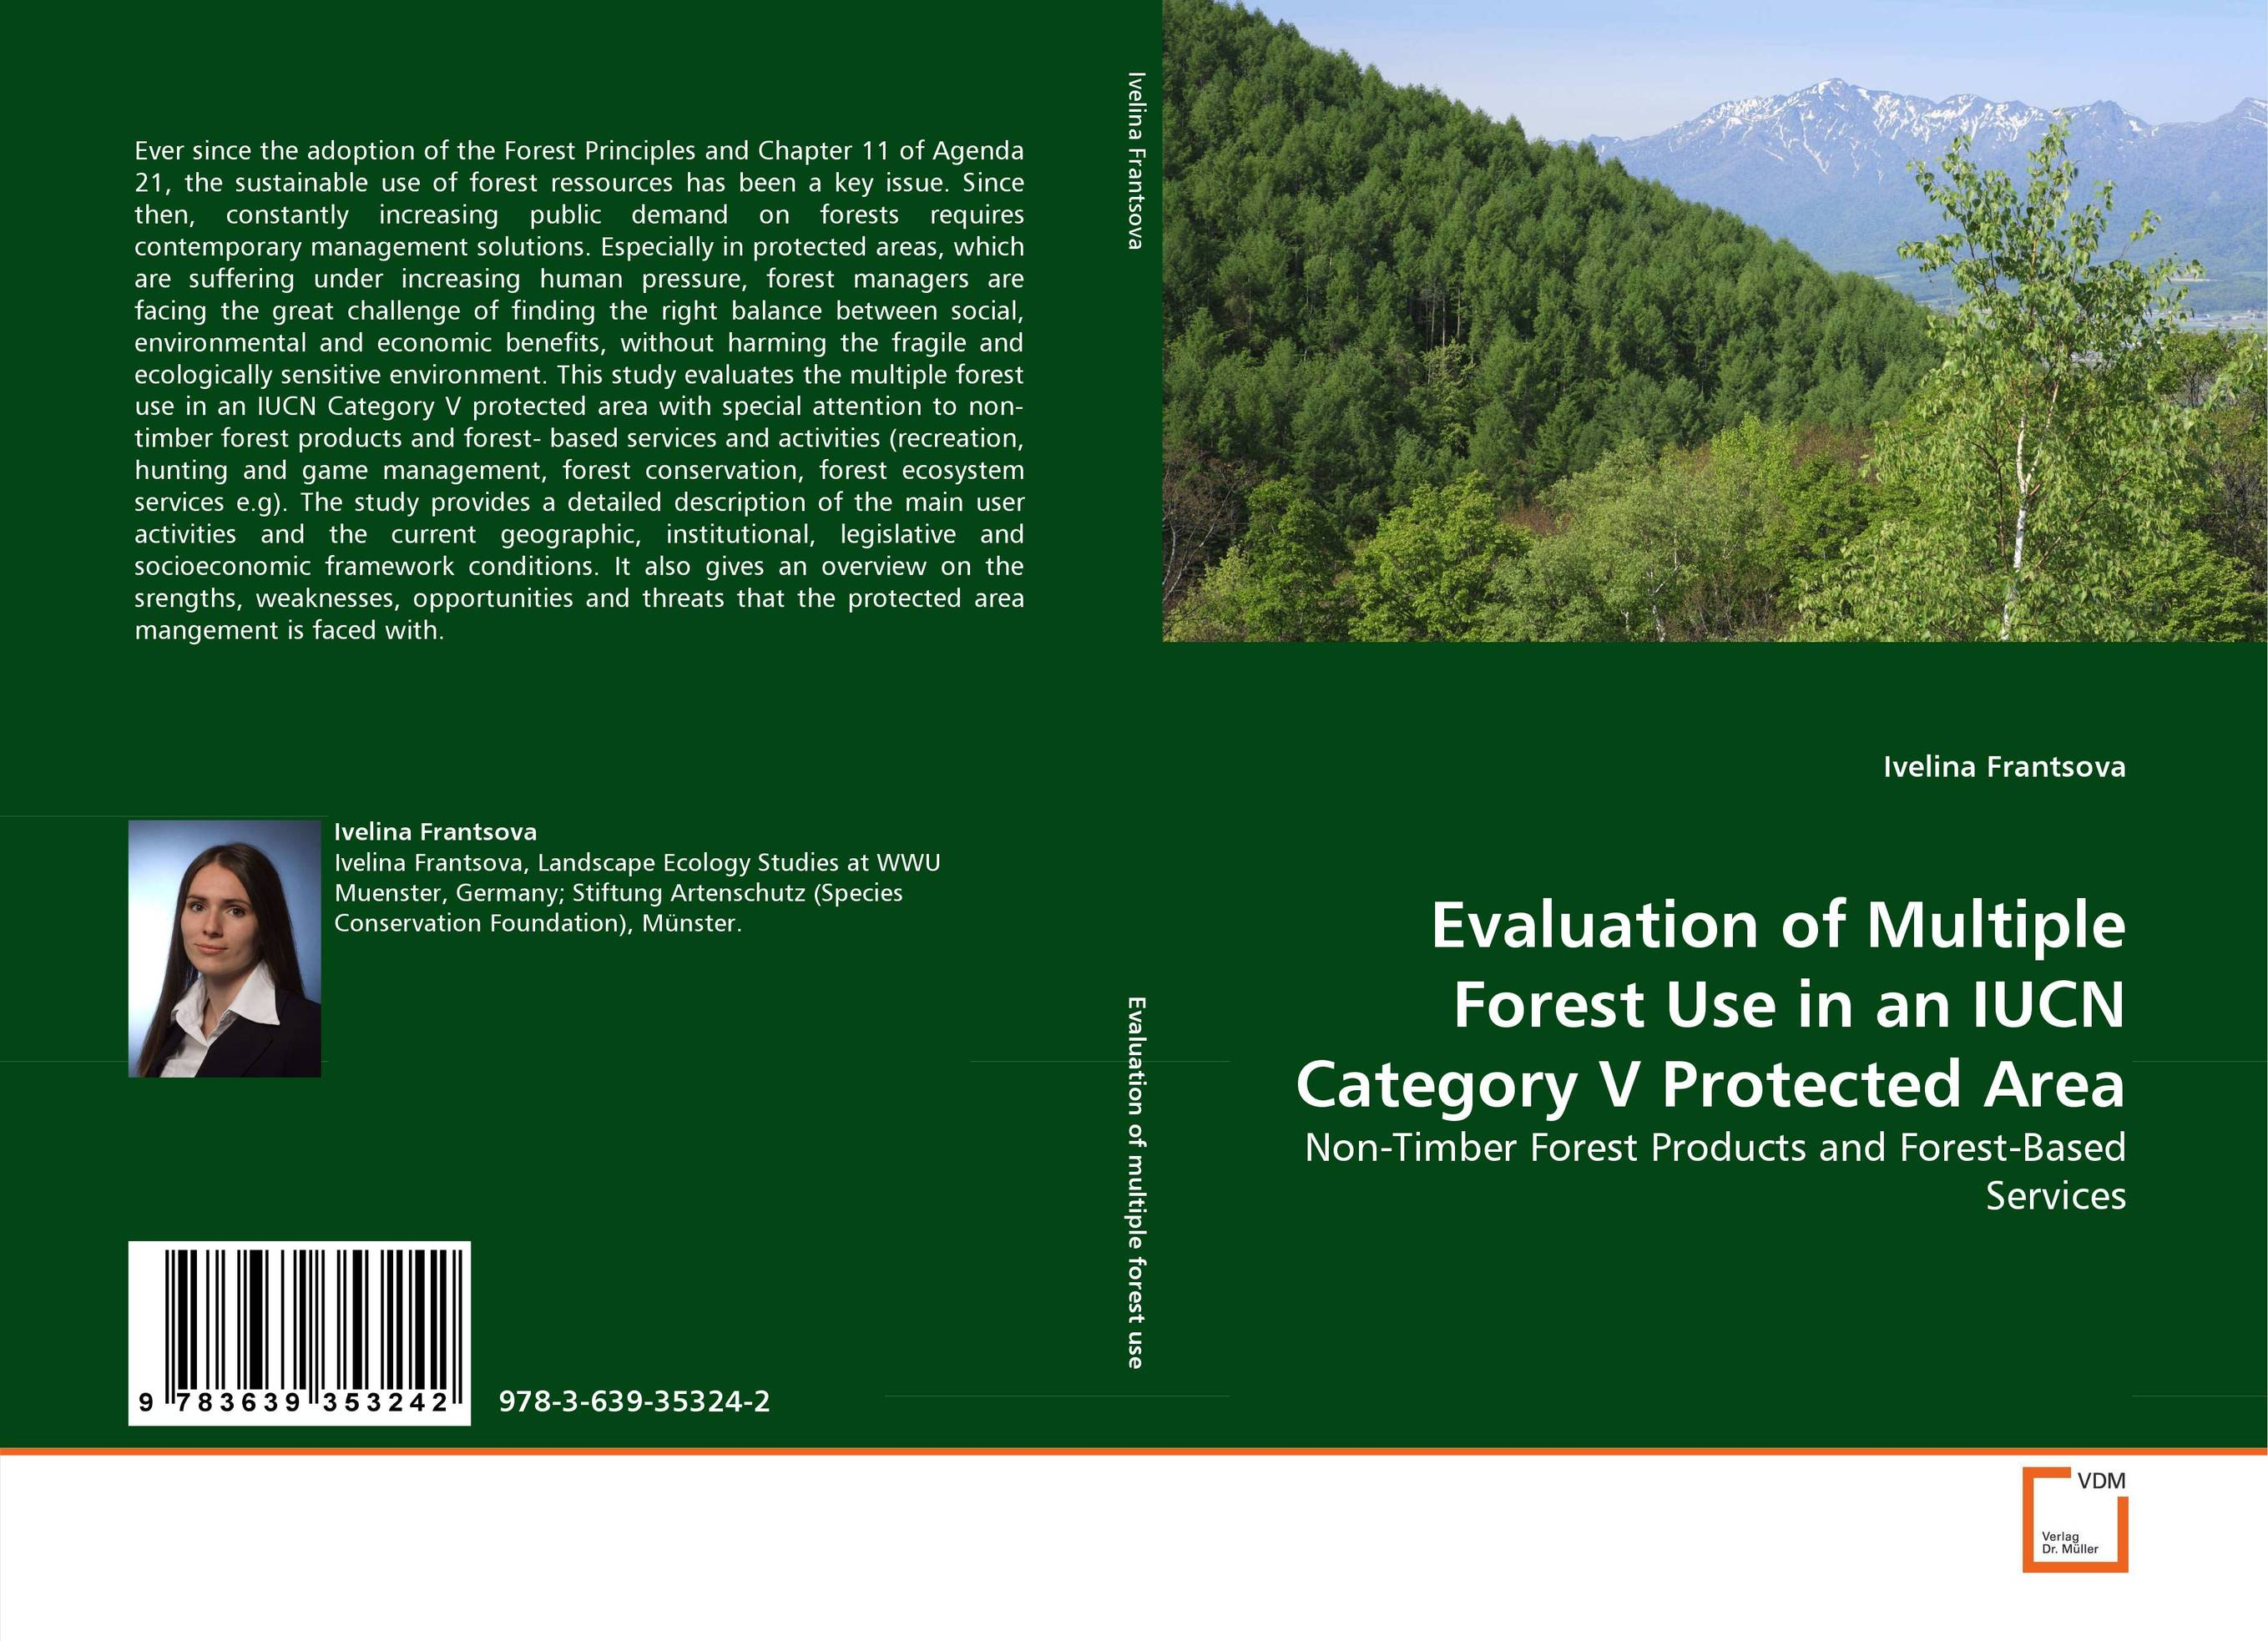 Evaluation of Multiple Forest Use in an IUCN Category V Protected Area